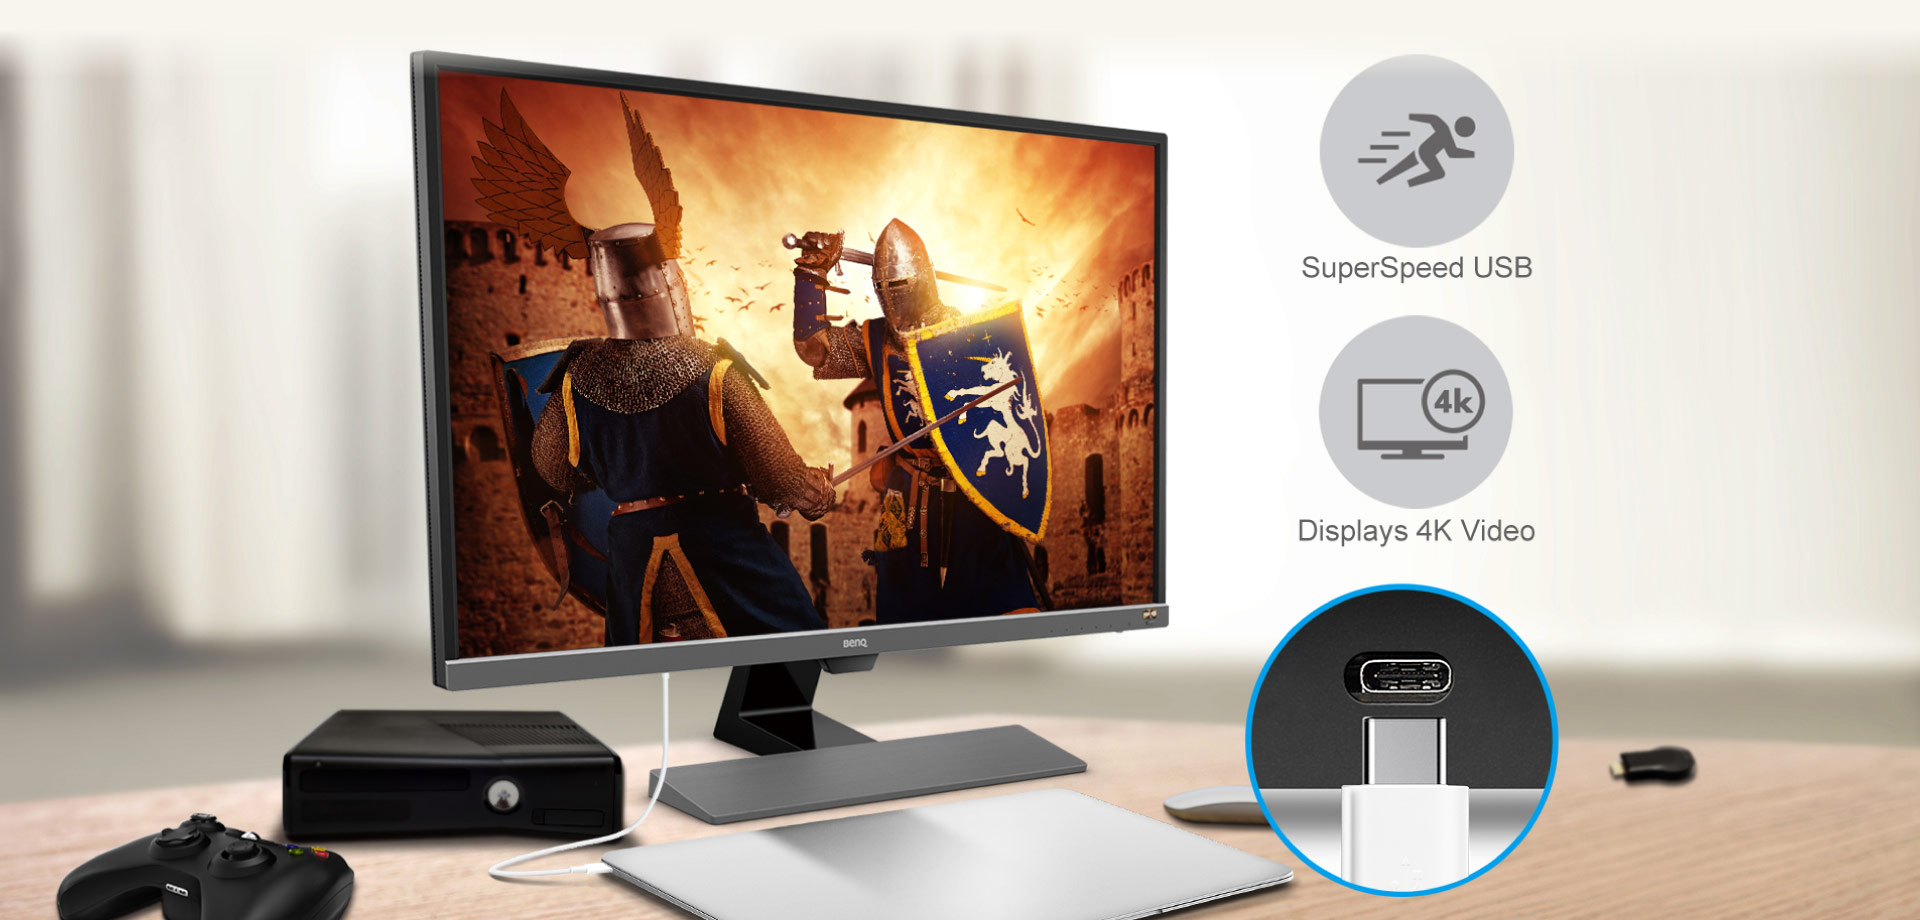 Perfect for streaming console games and UHD content in crisp 4K display